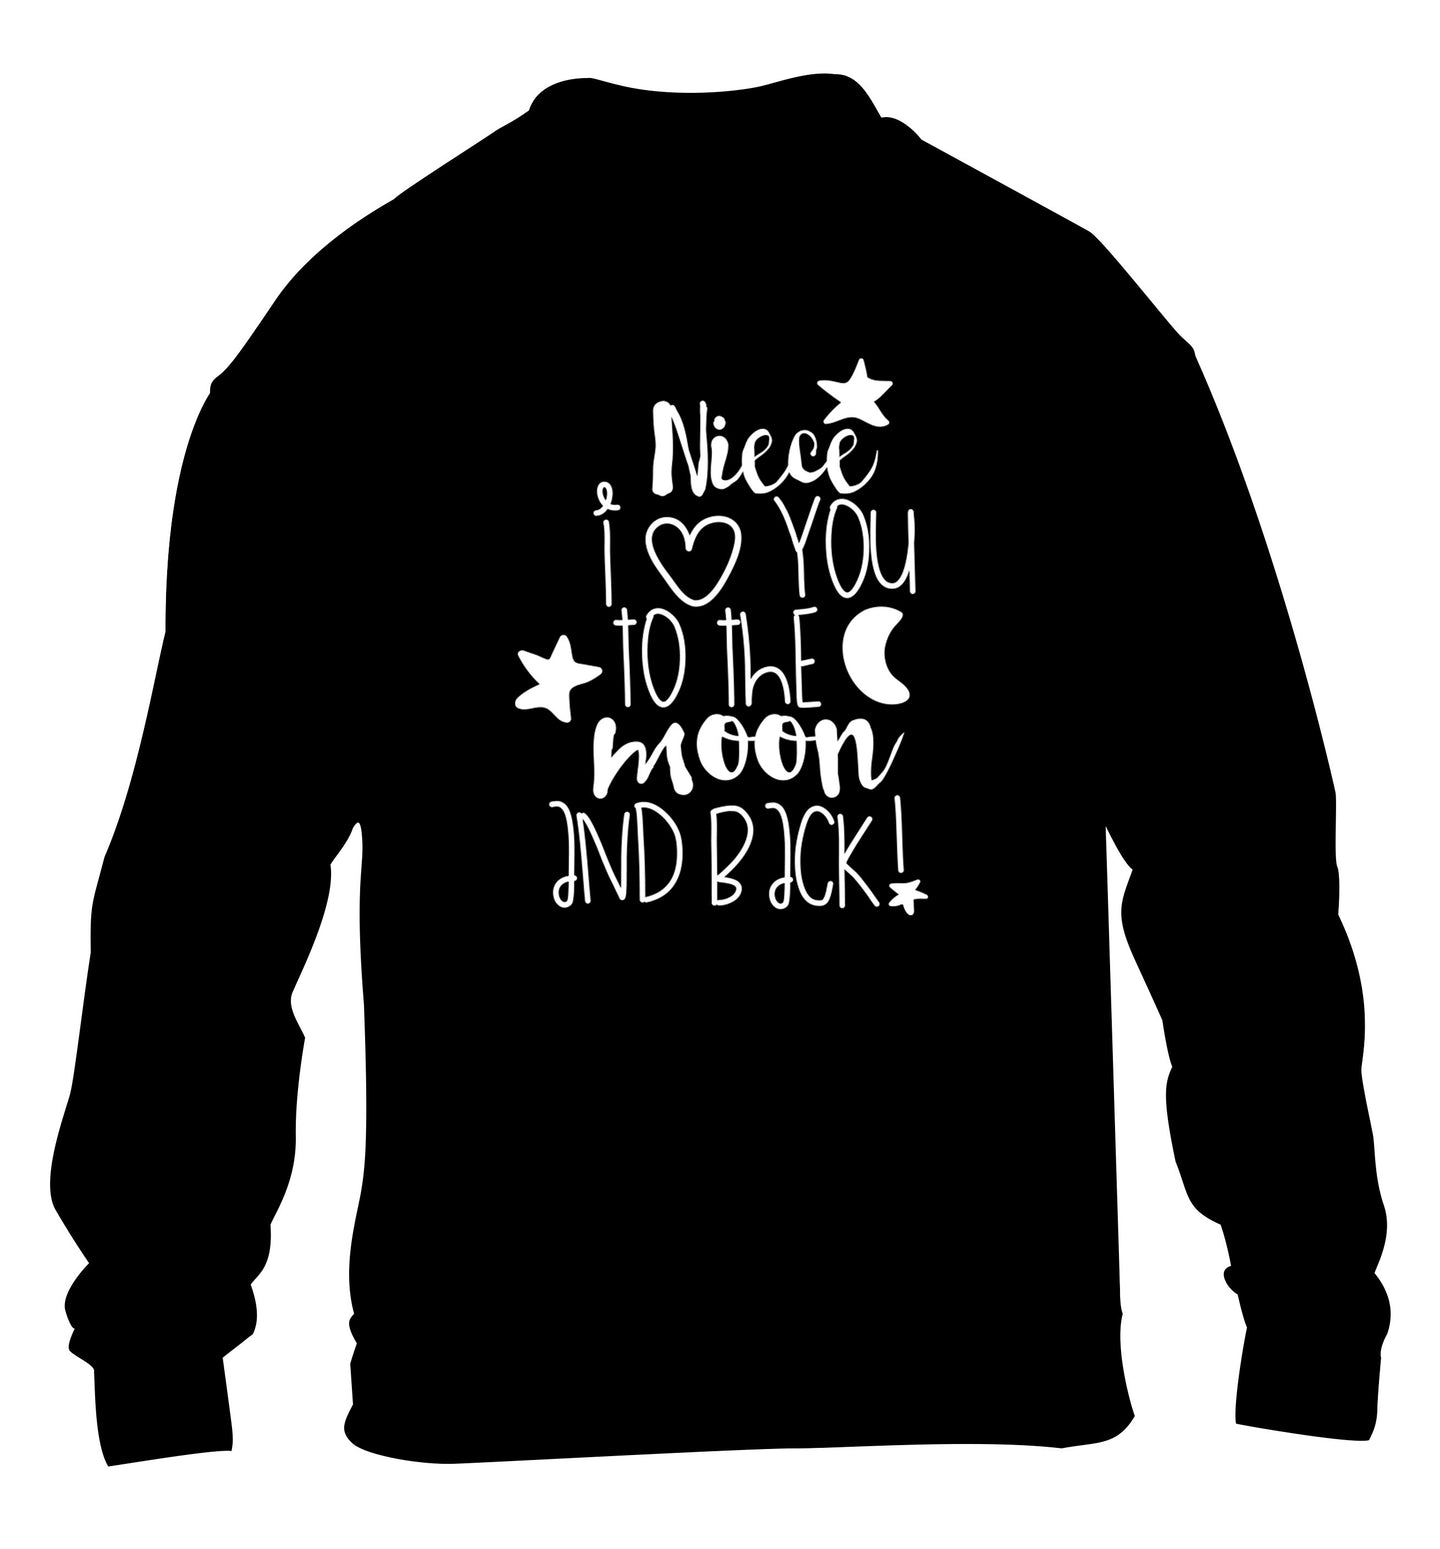 Niece I love you to the moon and back children's black  sweater 12-14 Years